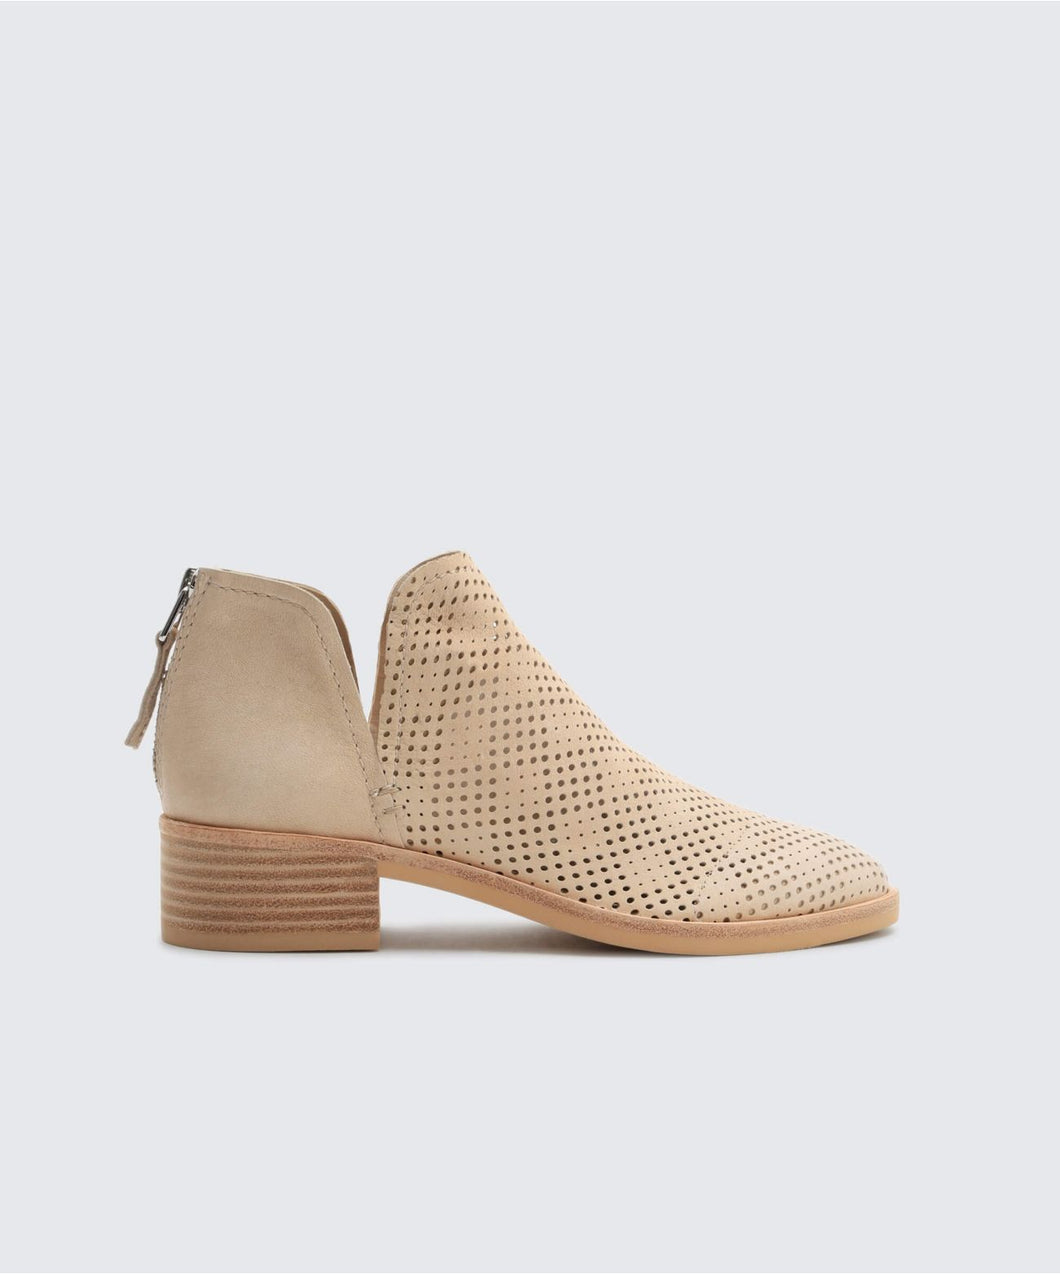 TAURIS BOOTIES IN SAND -   Dolce Vita